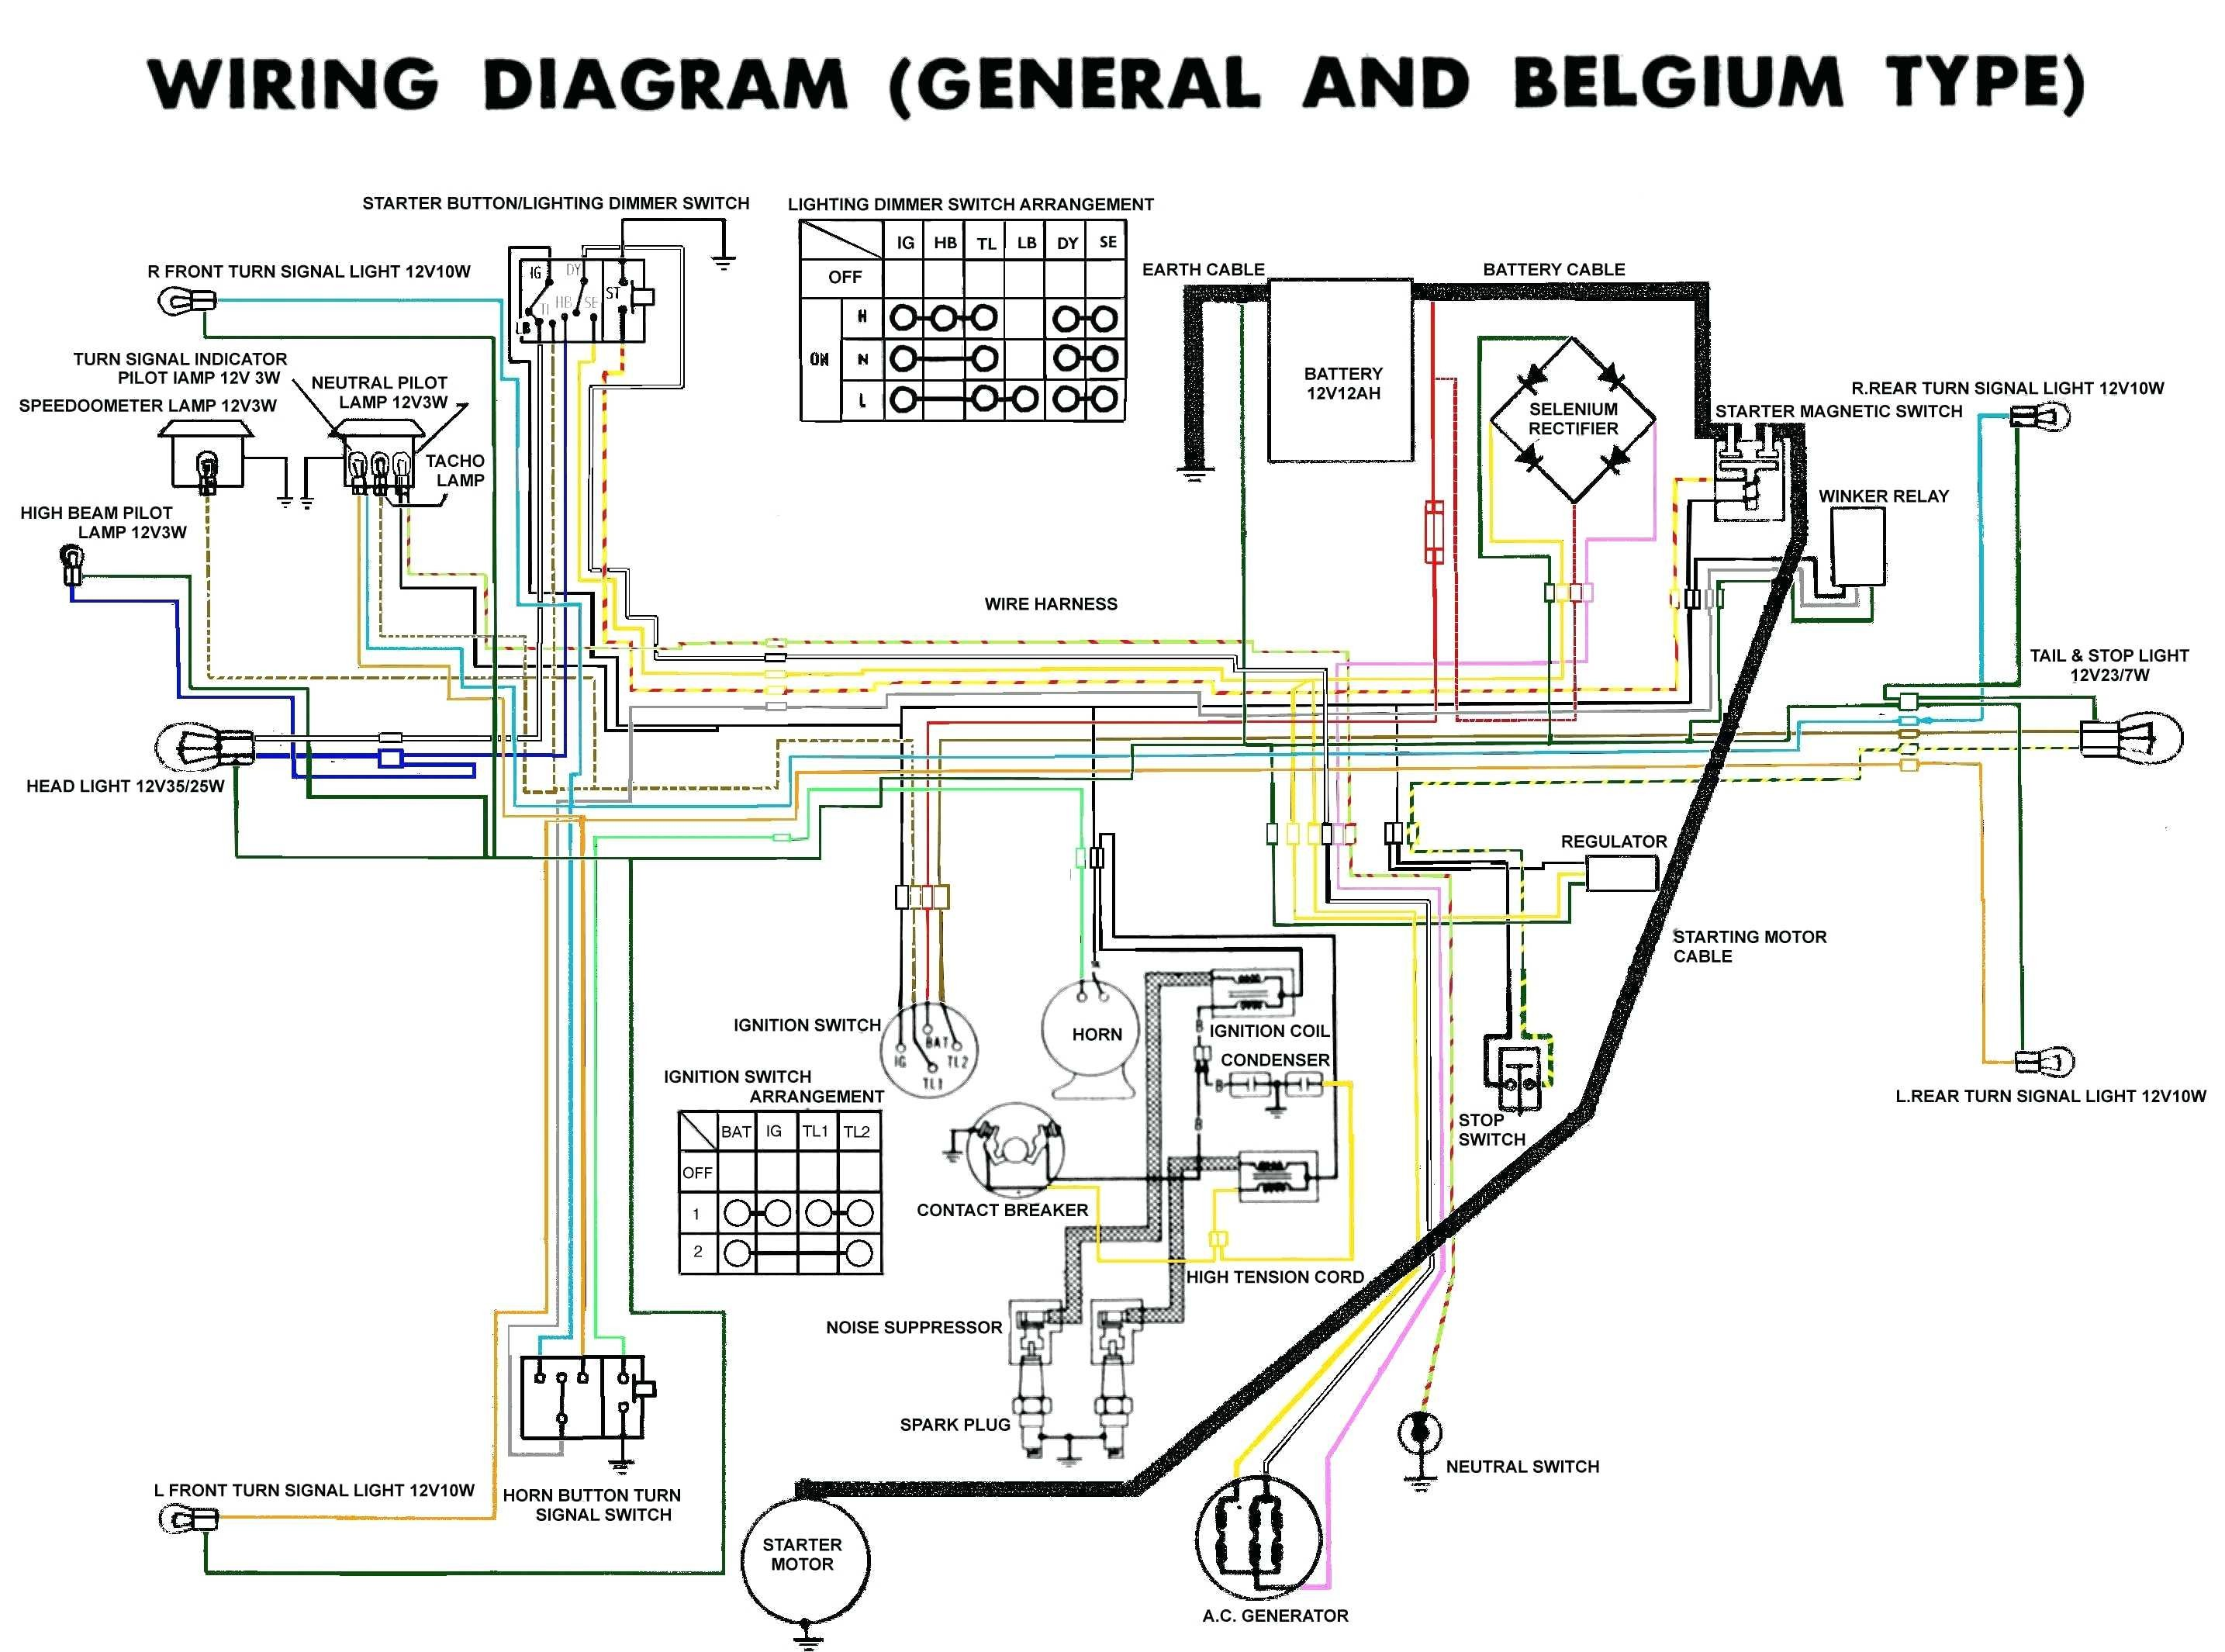 DIAGRAM] Simple Pocket Bike Wiring Diagram FULL Version HD Quality Wiring  Diagram - OUTLETDIAGRAM.CONOSCENZACALABRIA.IT | X19 Super Pocket Bike Wiring Diagram |  | outletdiagram.conoscenzacalabria.it